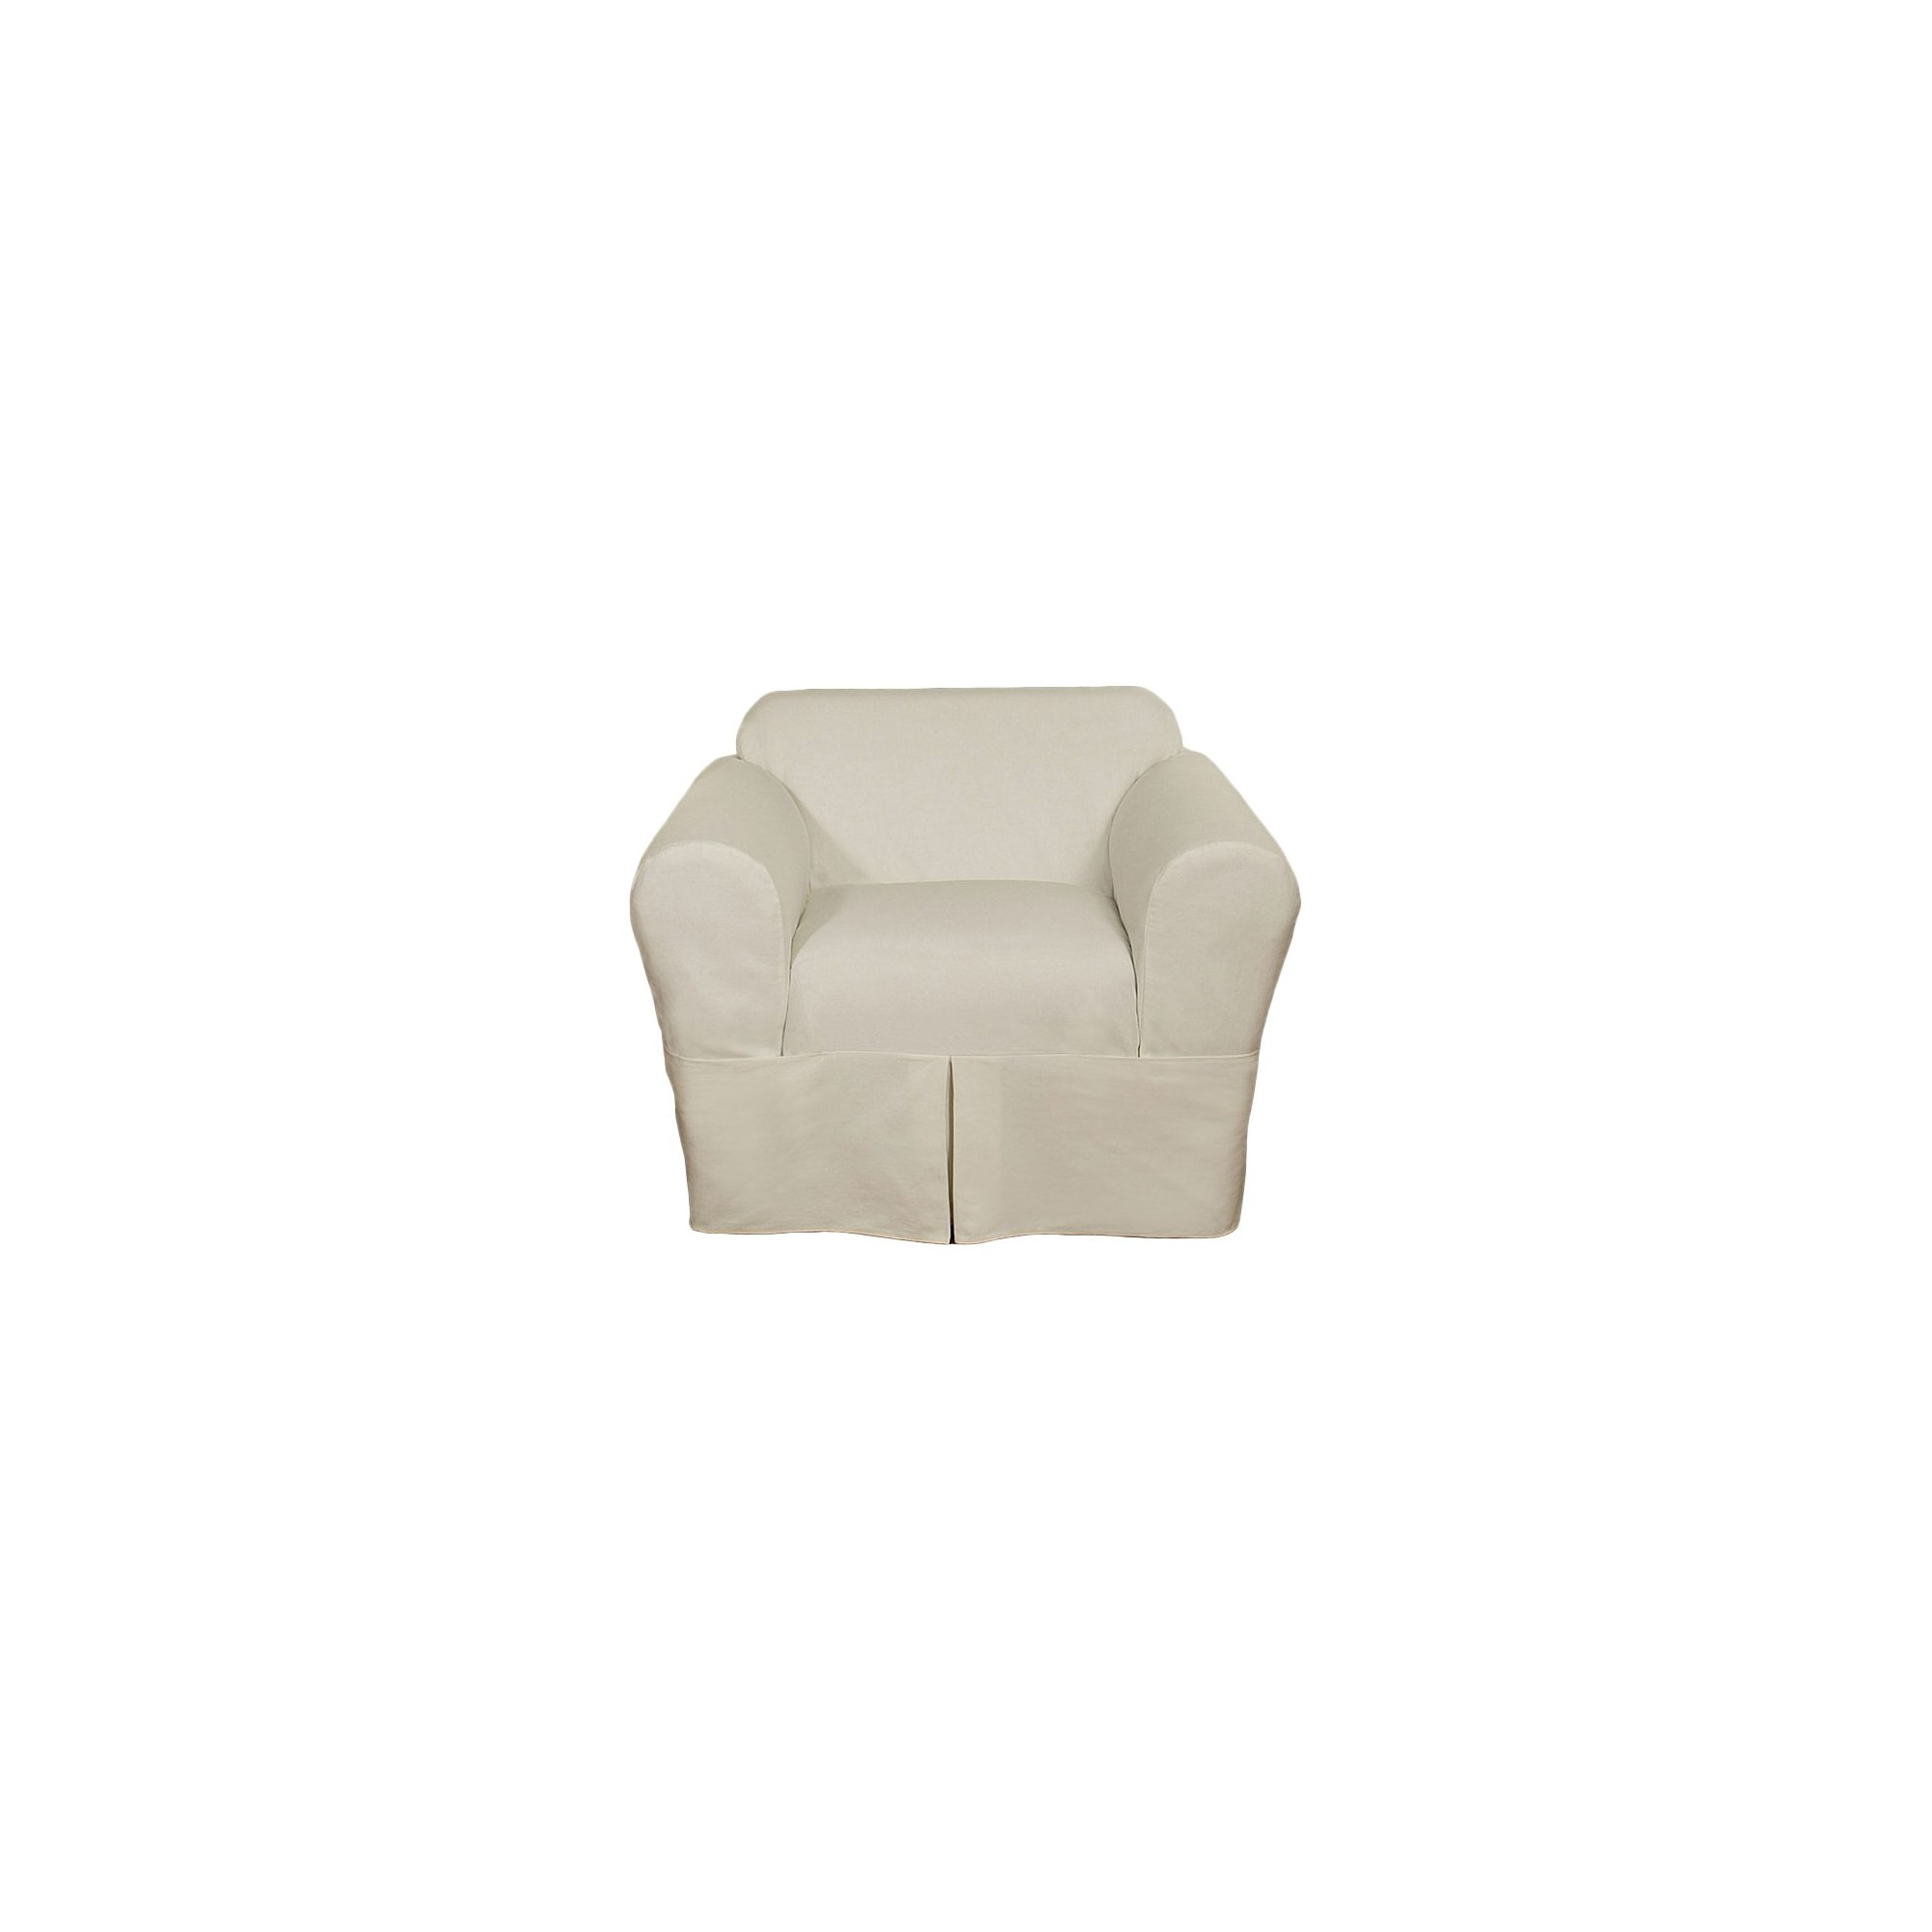 White Wrap Chair Slipcover (2 Piece)